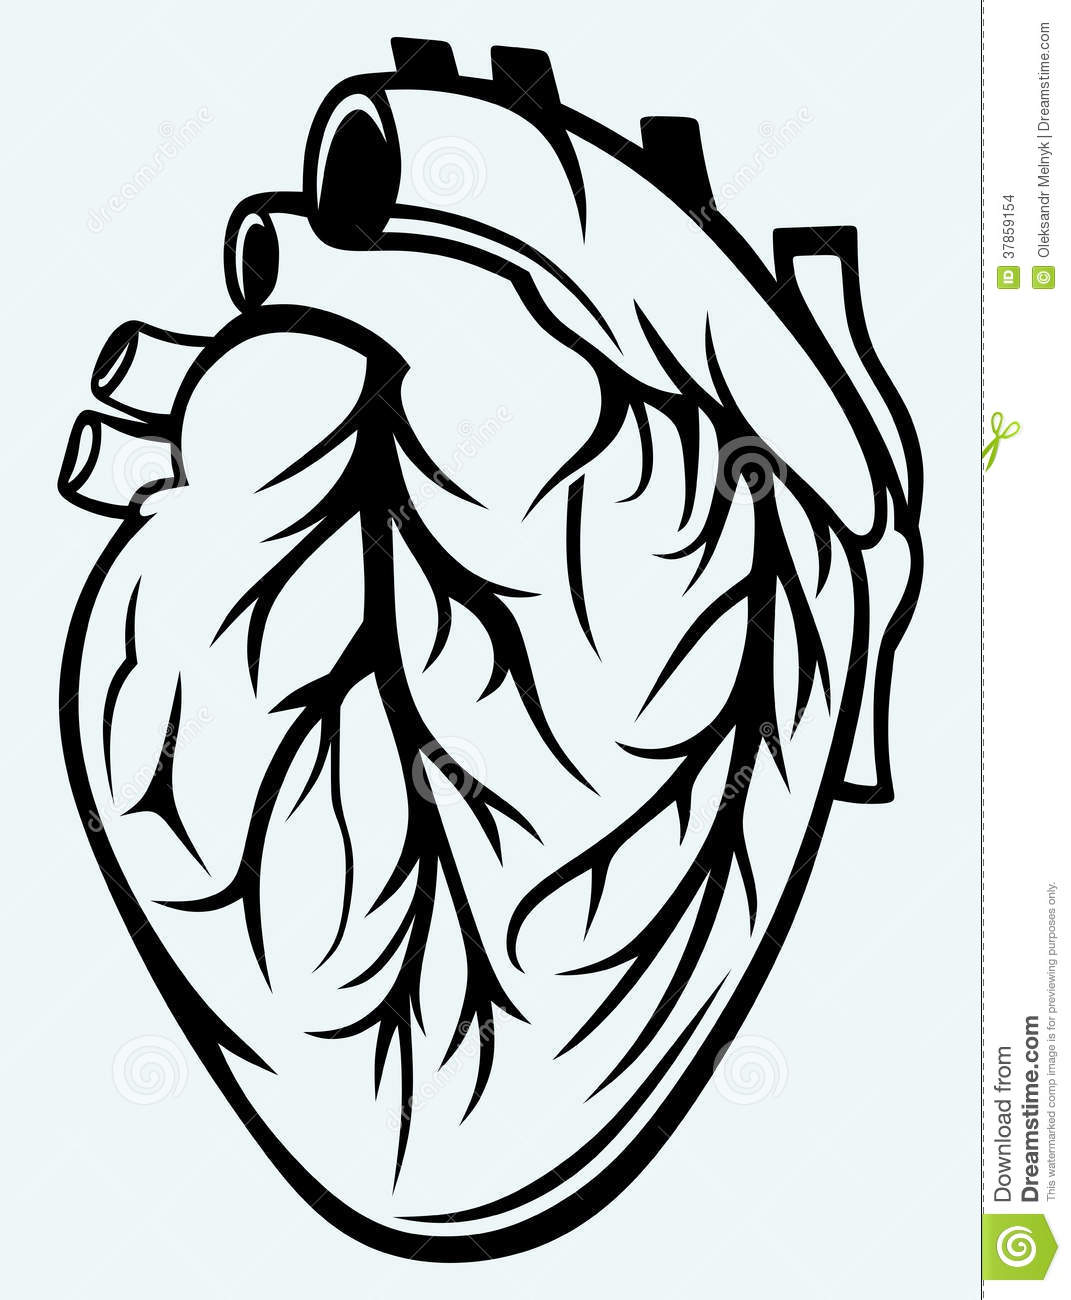 Heart Anatomy Coloring Page  exploringnatureorg